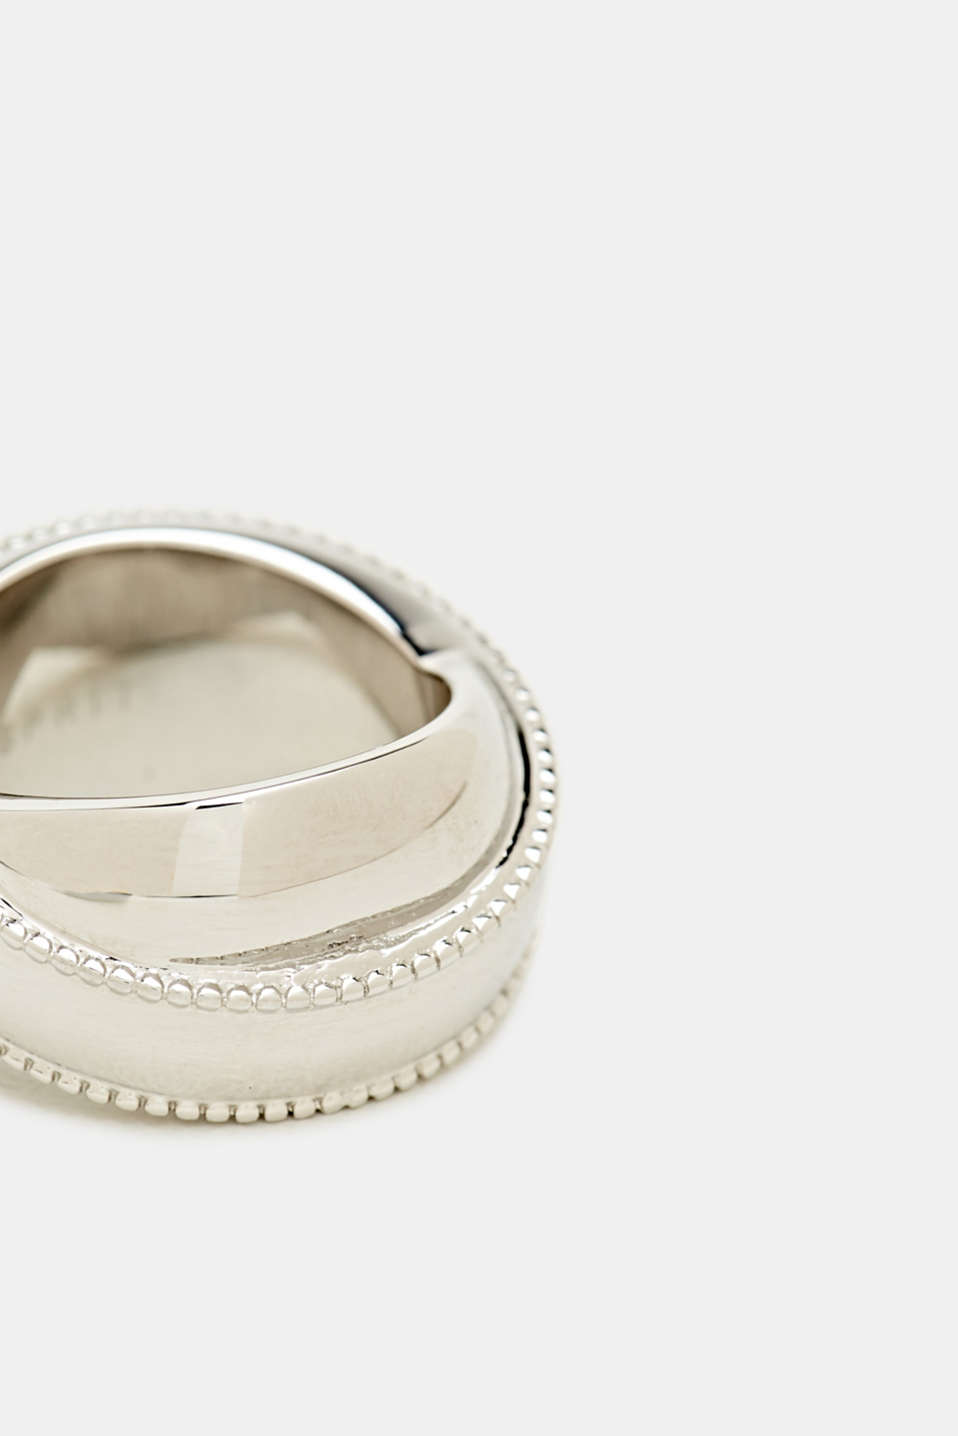 Stainless steel statement ring, LCSILVER, detail image number 1